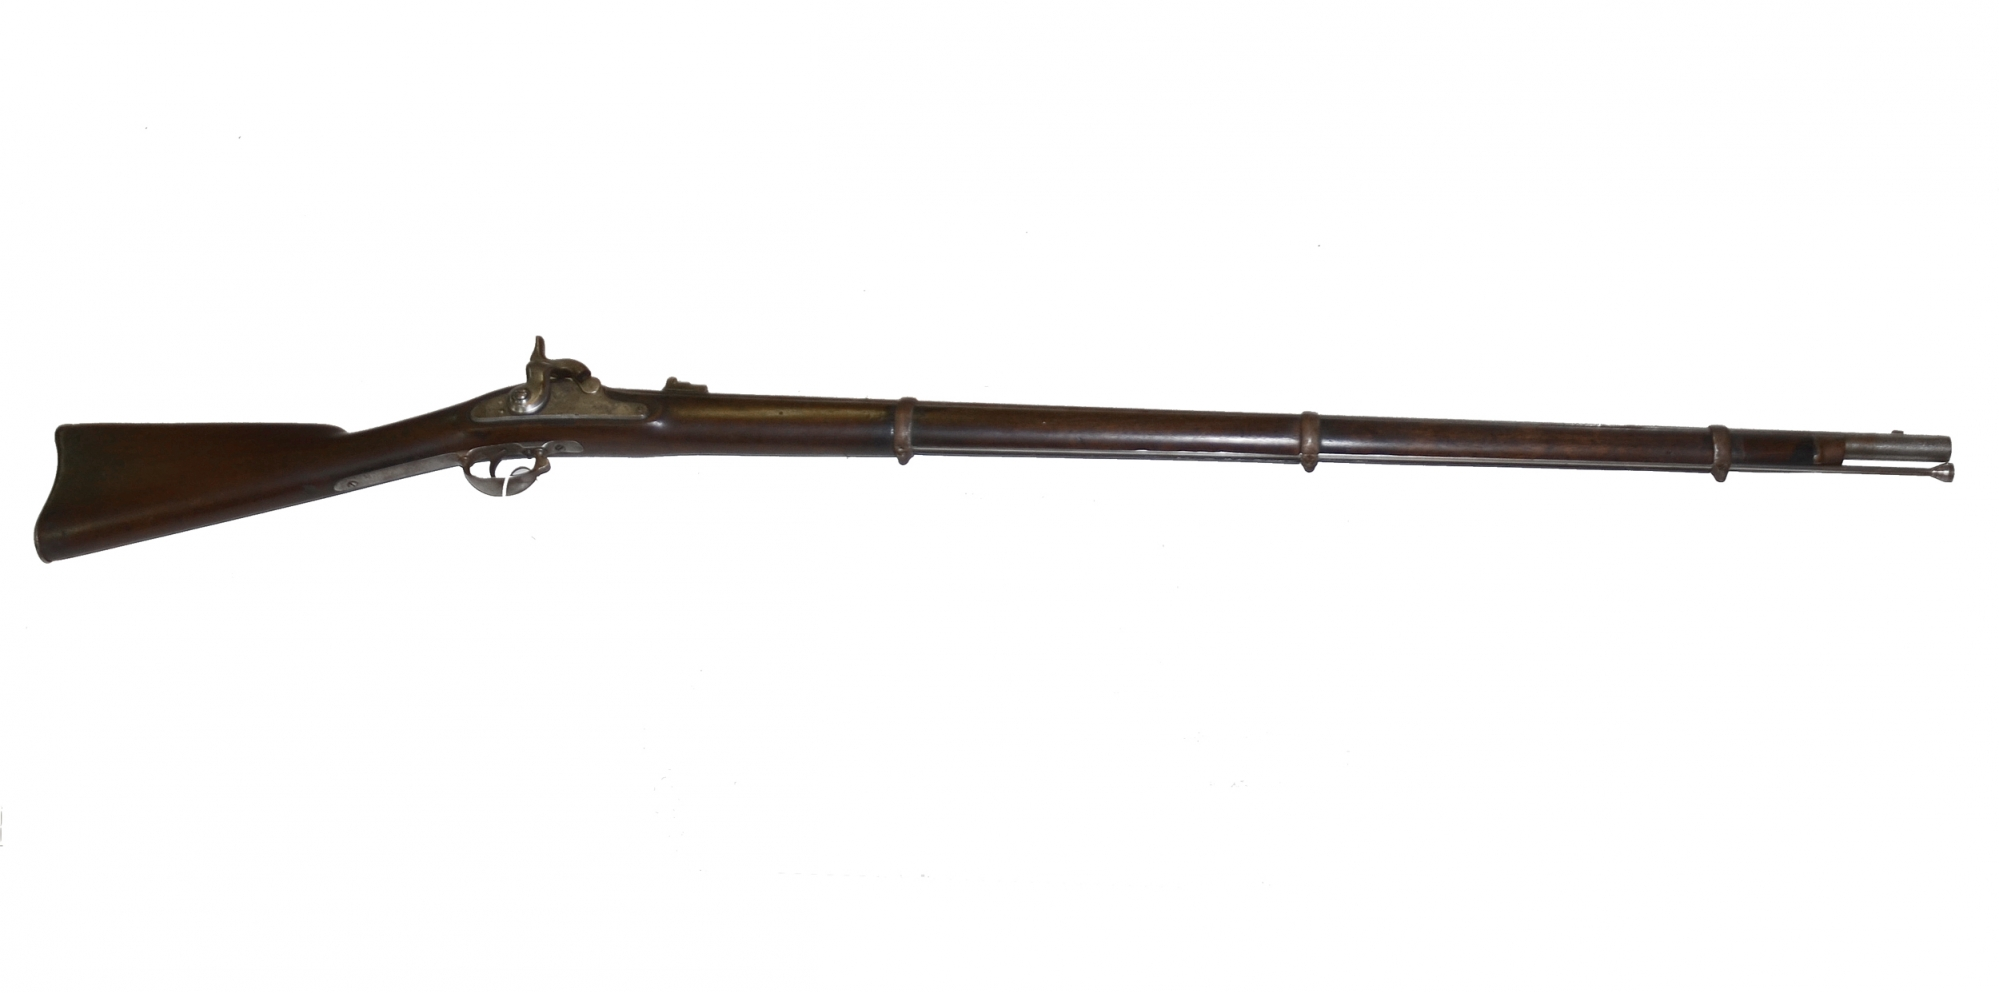 MODEL 1863 U.S. PERCUSSION RIFLE – MUSKET, TYPE I